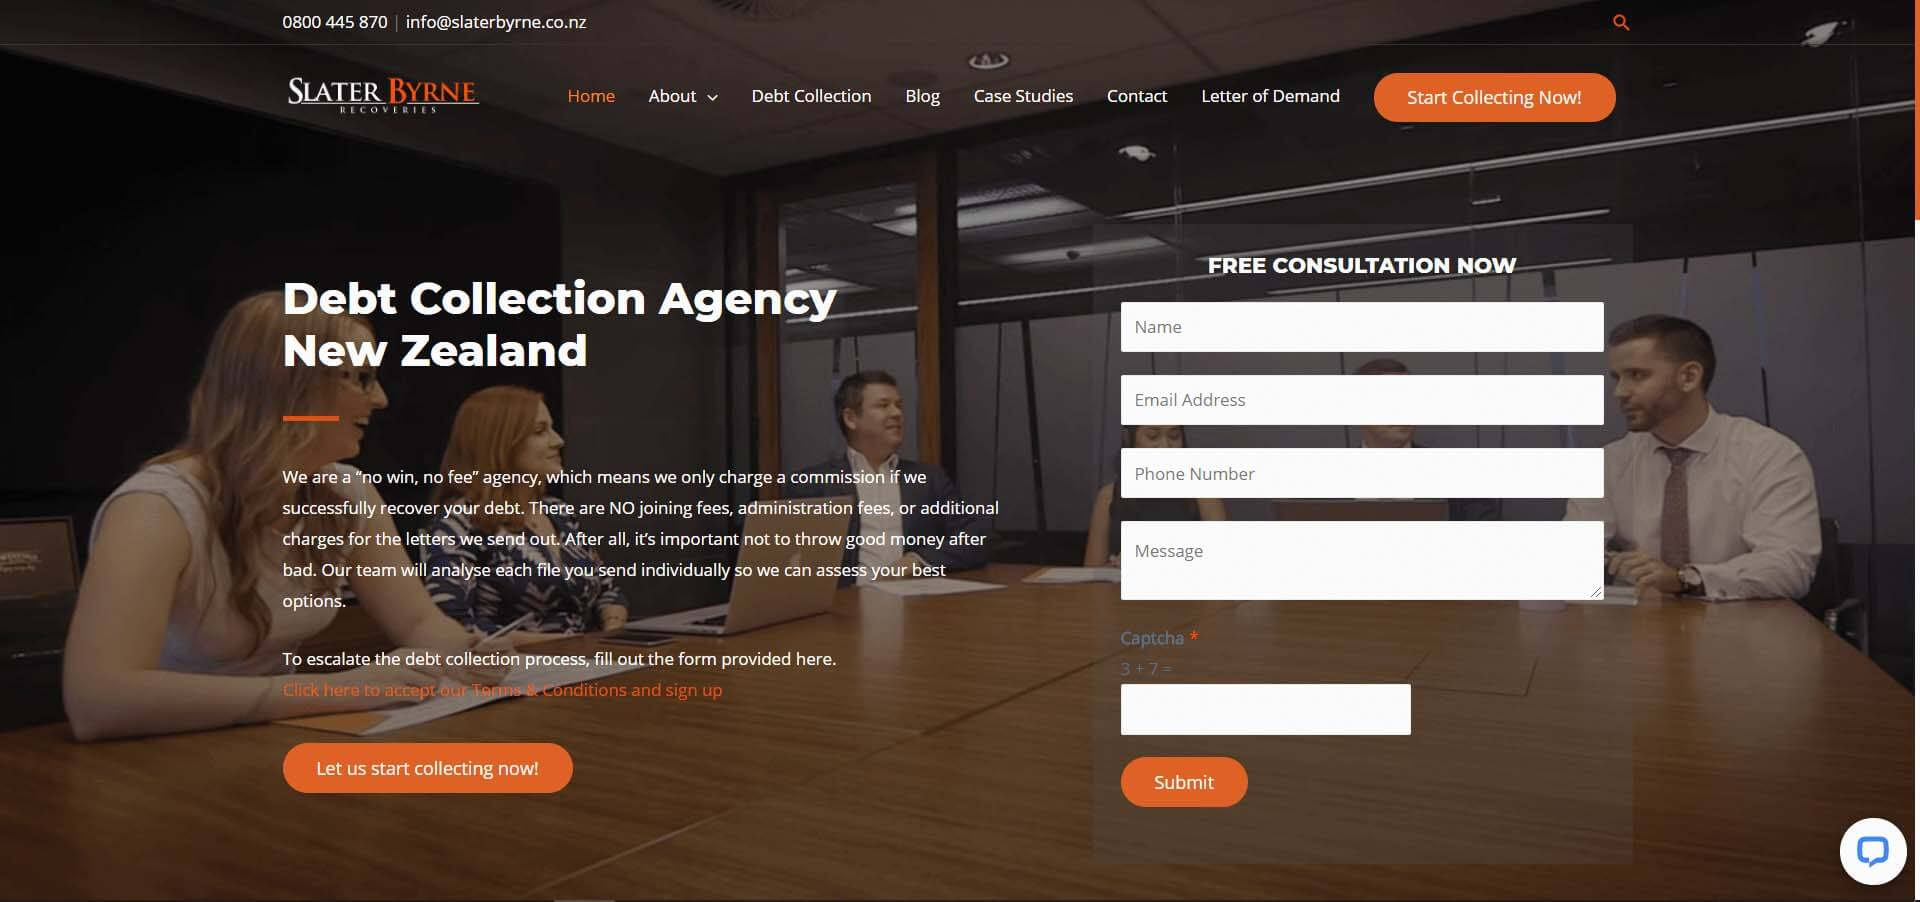 Debt Collection Agency New Zealand